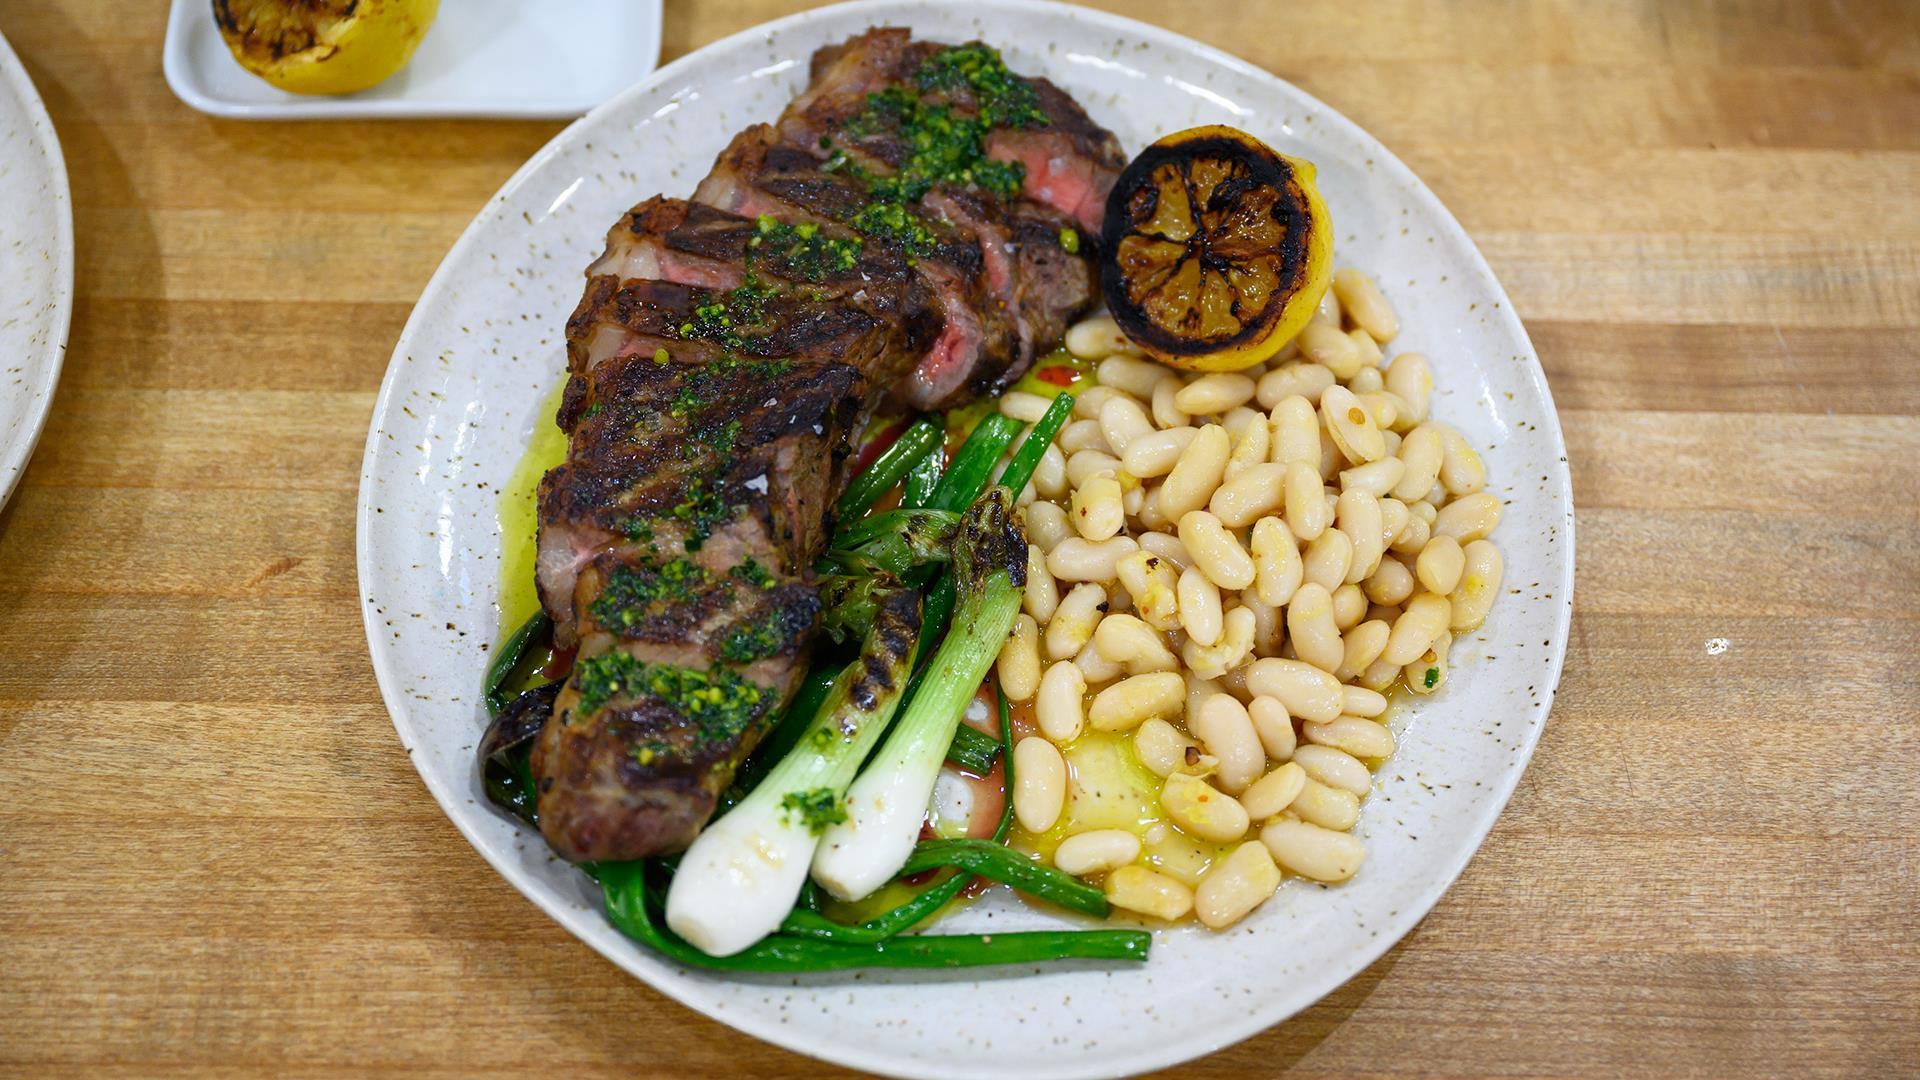 Grilling recipes: Make Tim Love's strip steak with beans and pesto